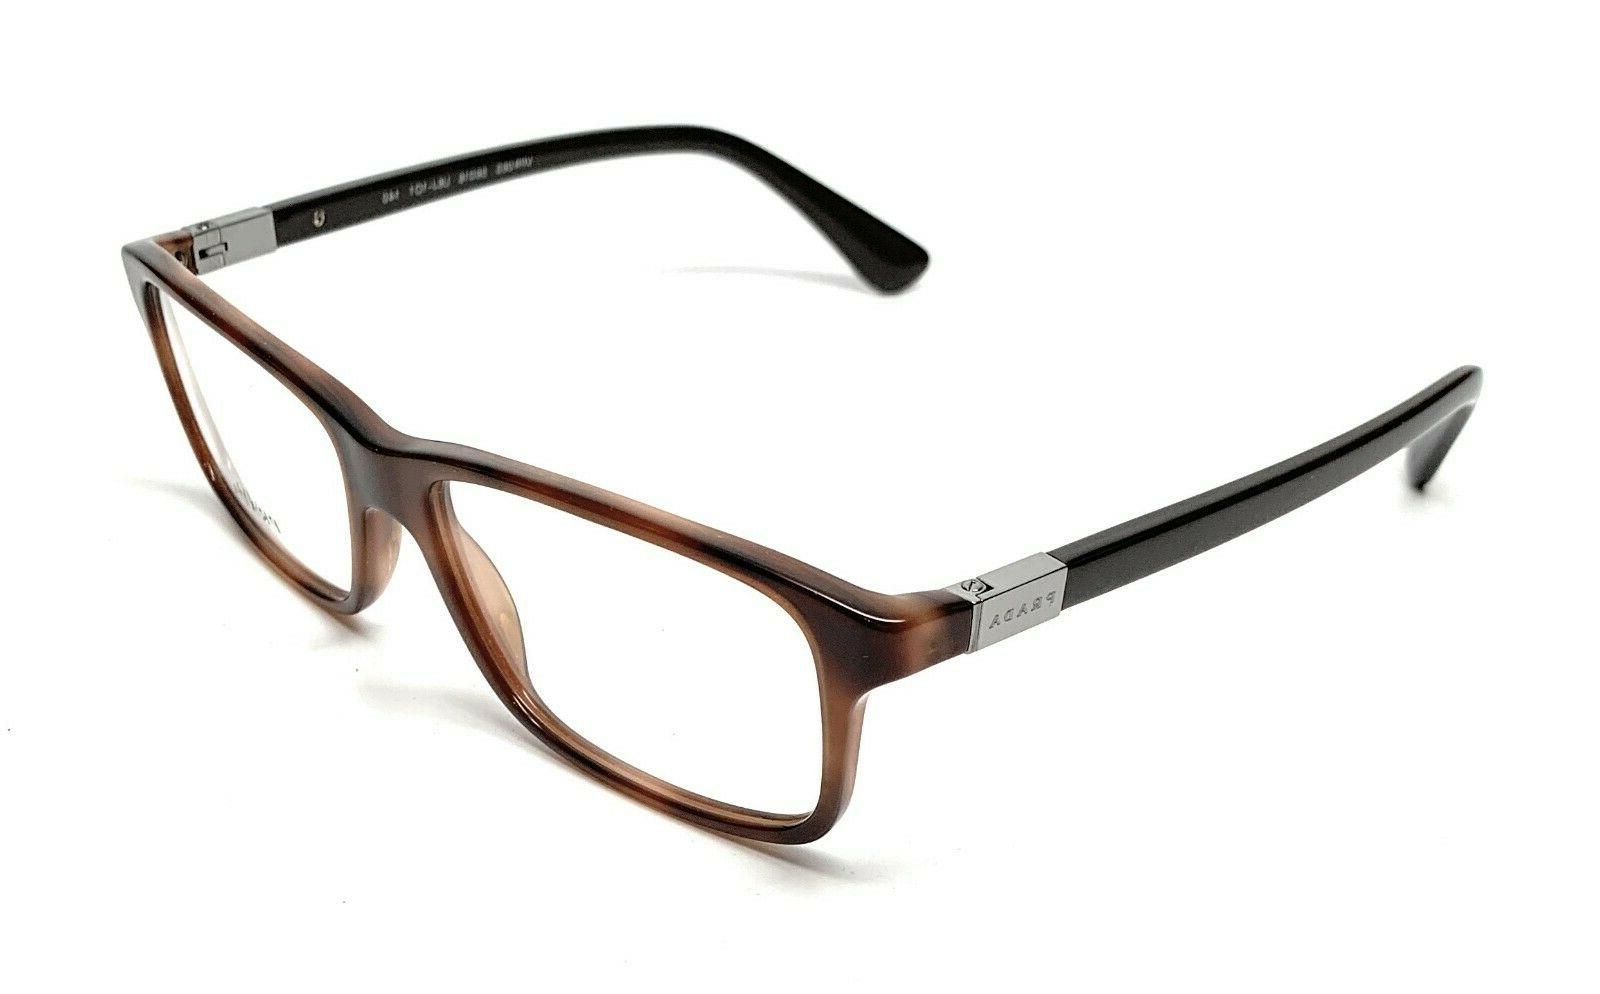 NEW PRADA VPR U6J-1O1 MEN'S EYEGLASSES 56-16